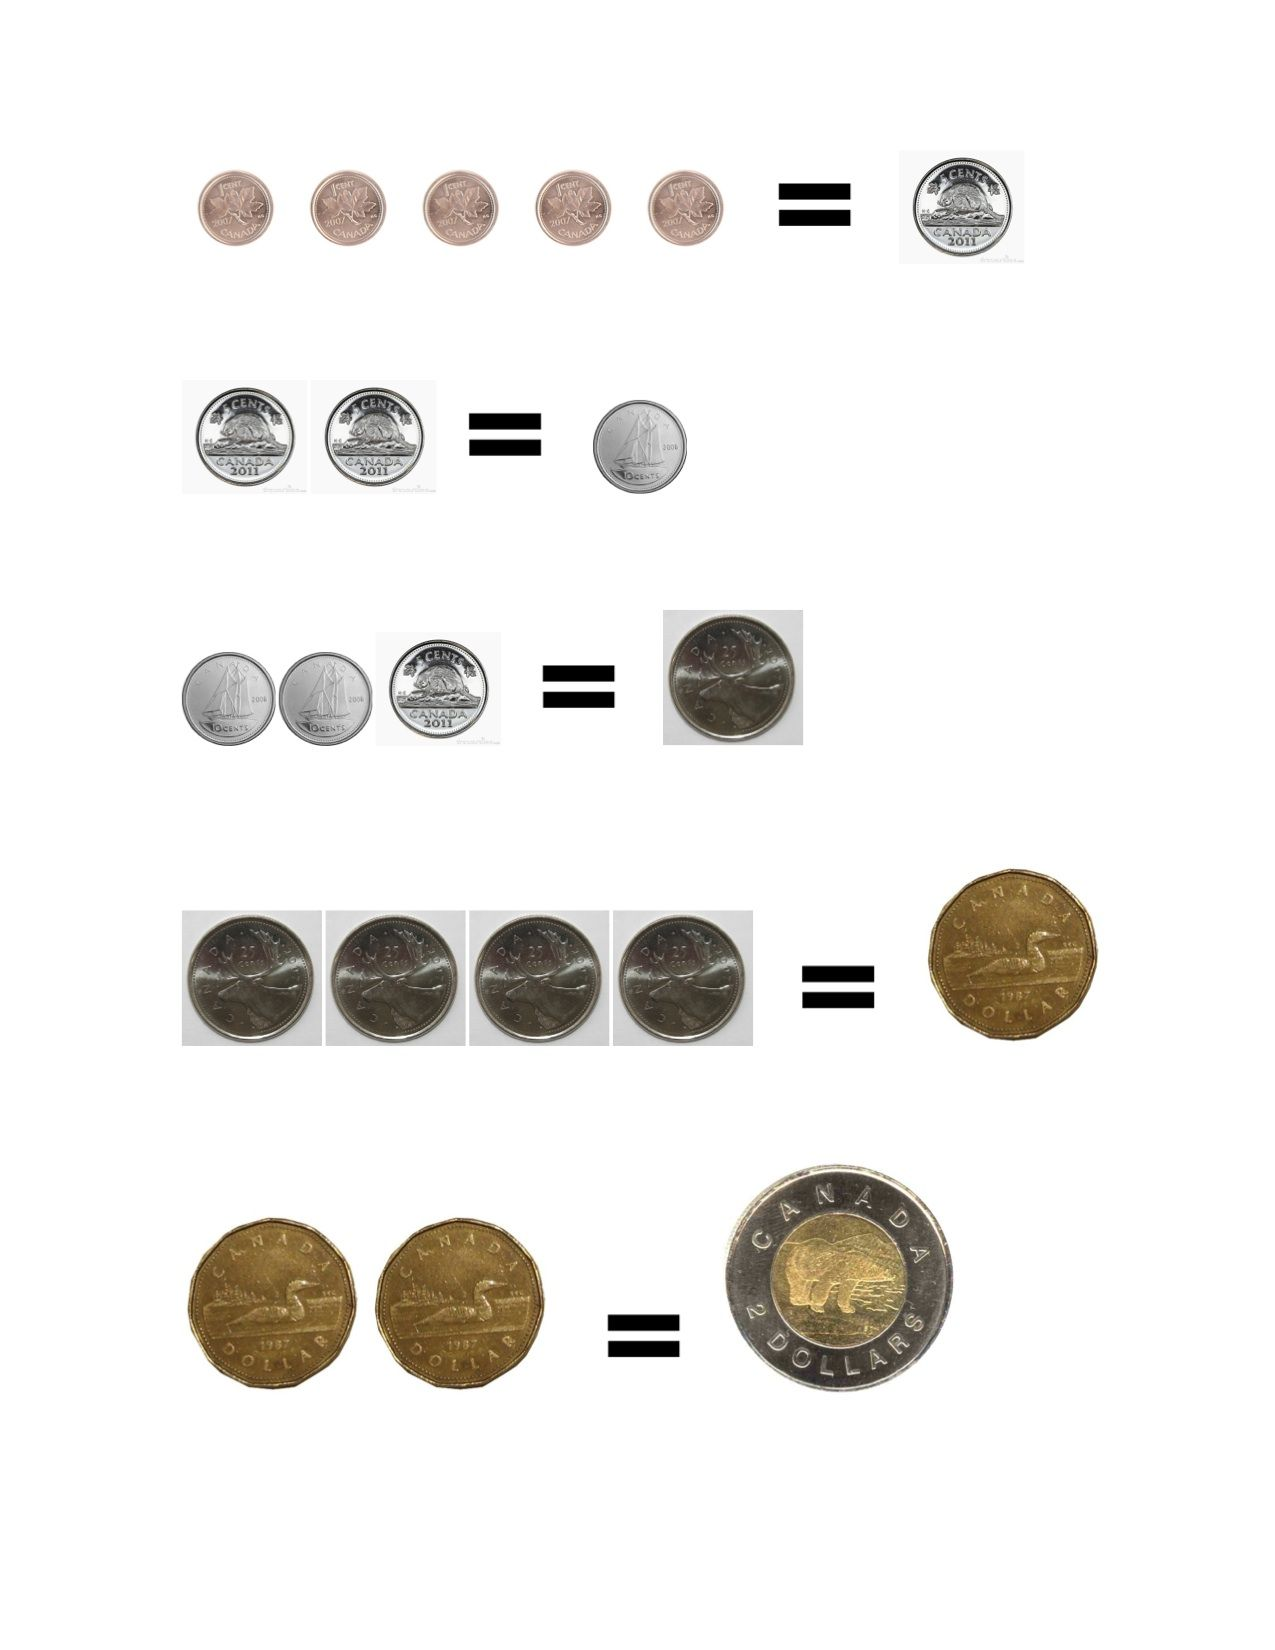 Canadian Coins Equivalents For Young Children